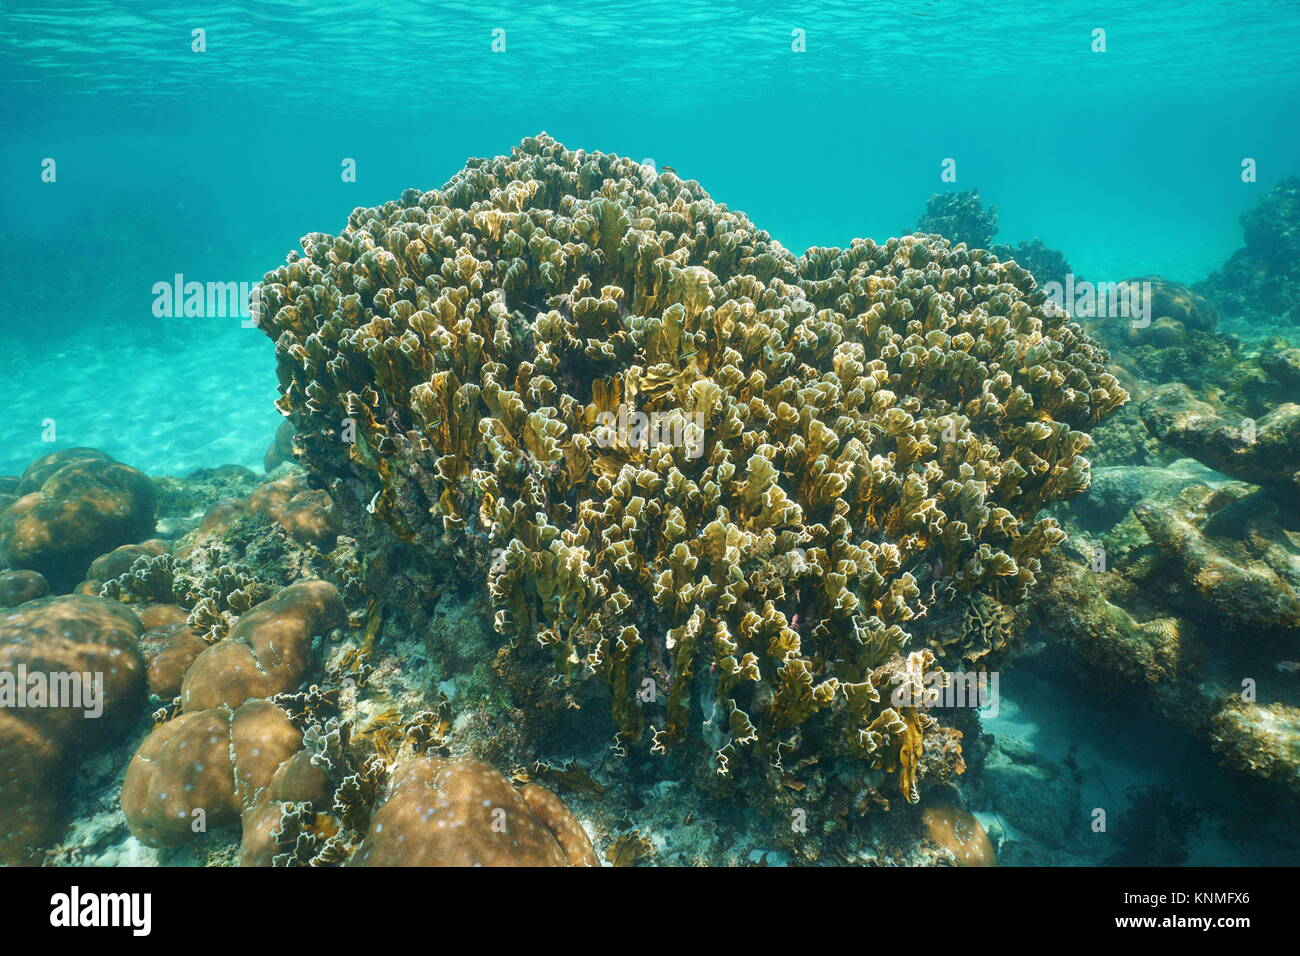 Reef with blade fire coral Millepora complanata underwater in the Caribbean sea - Stock Image